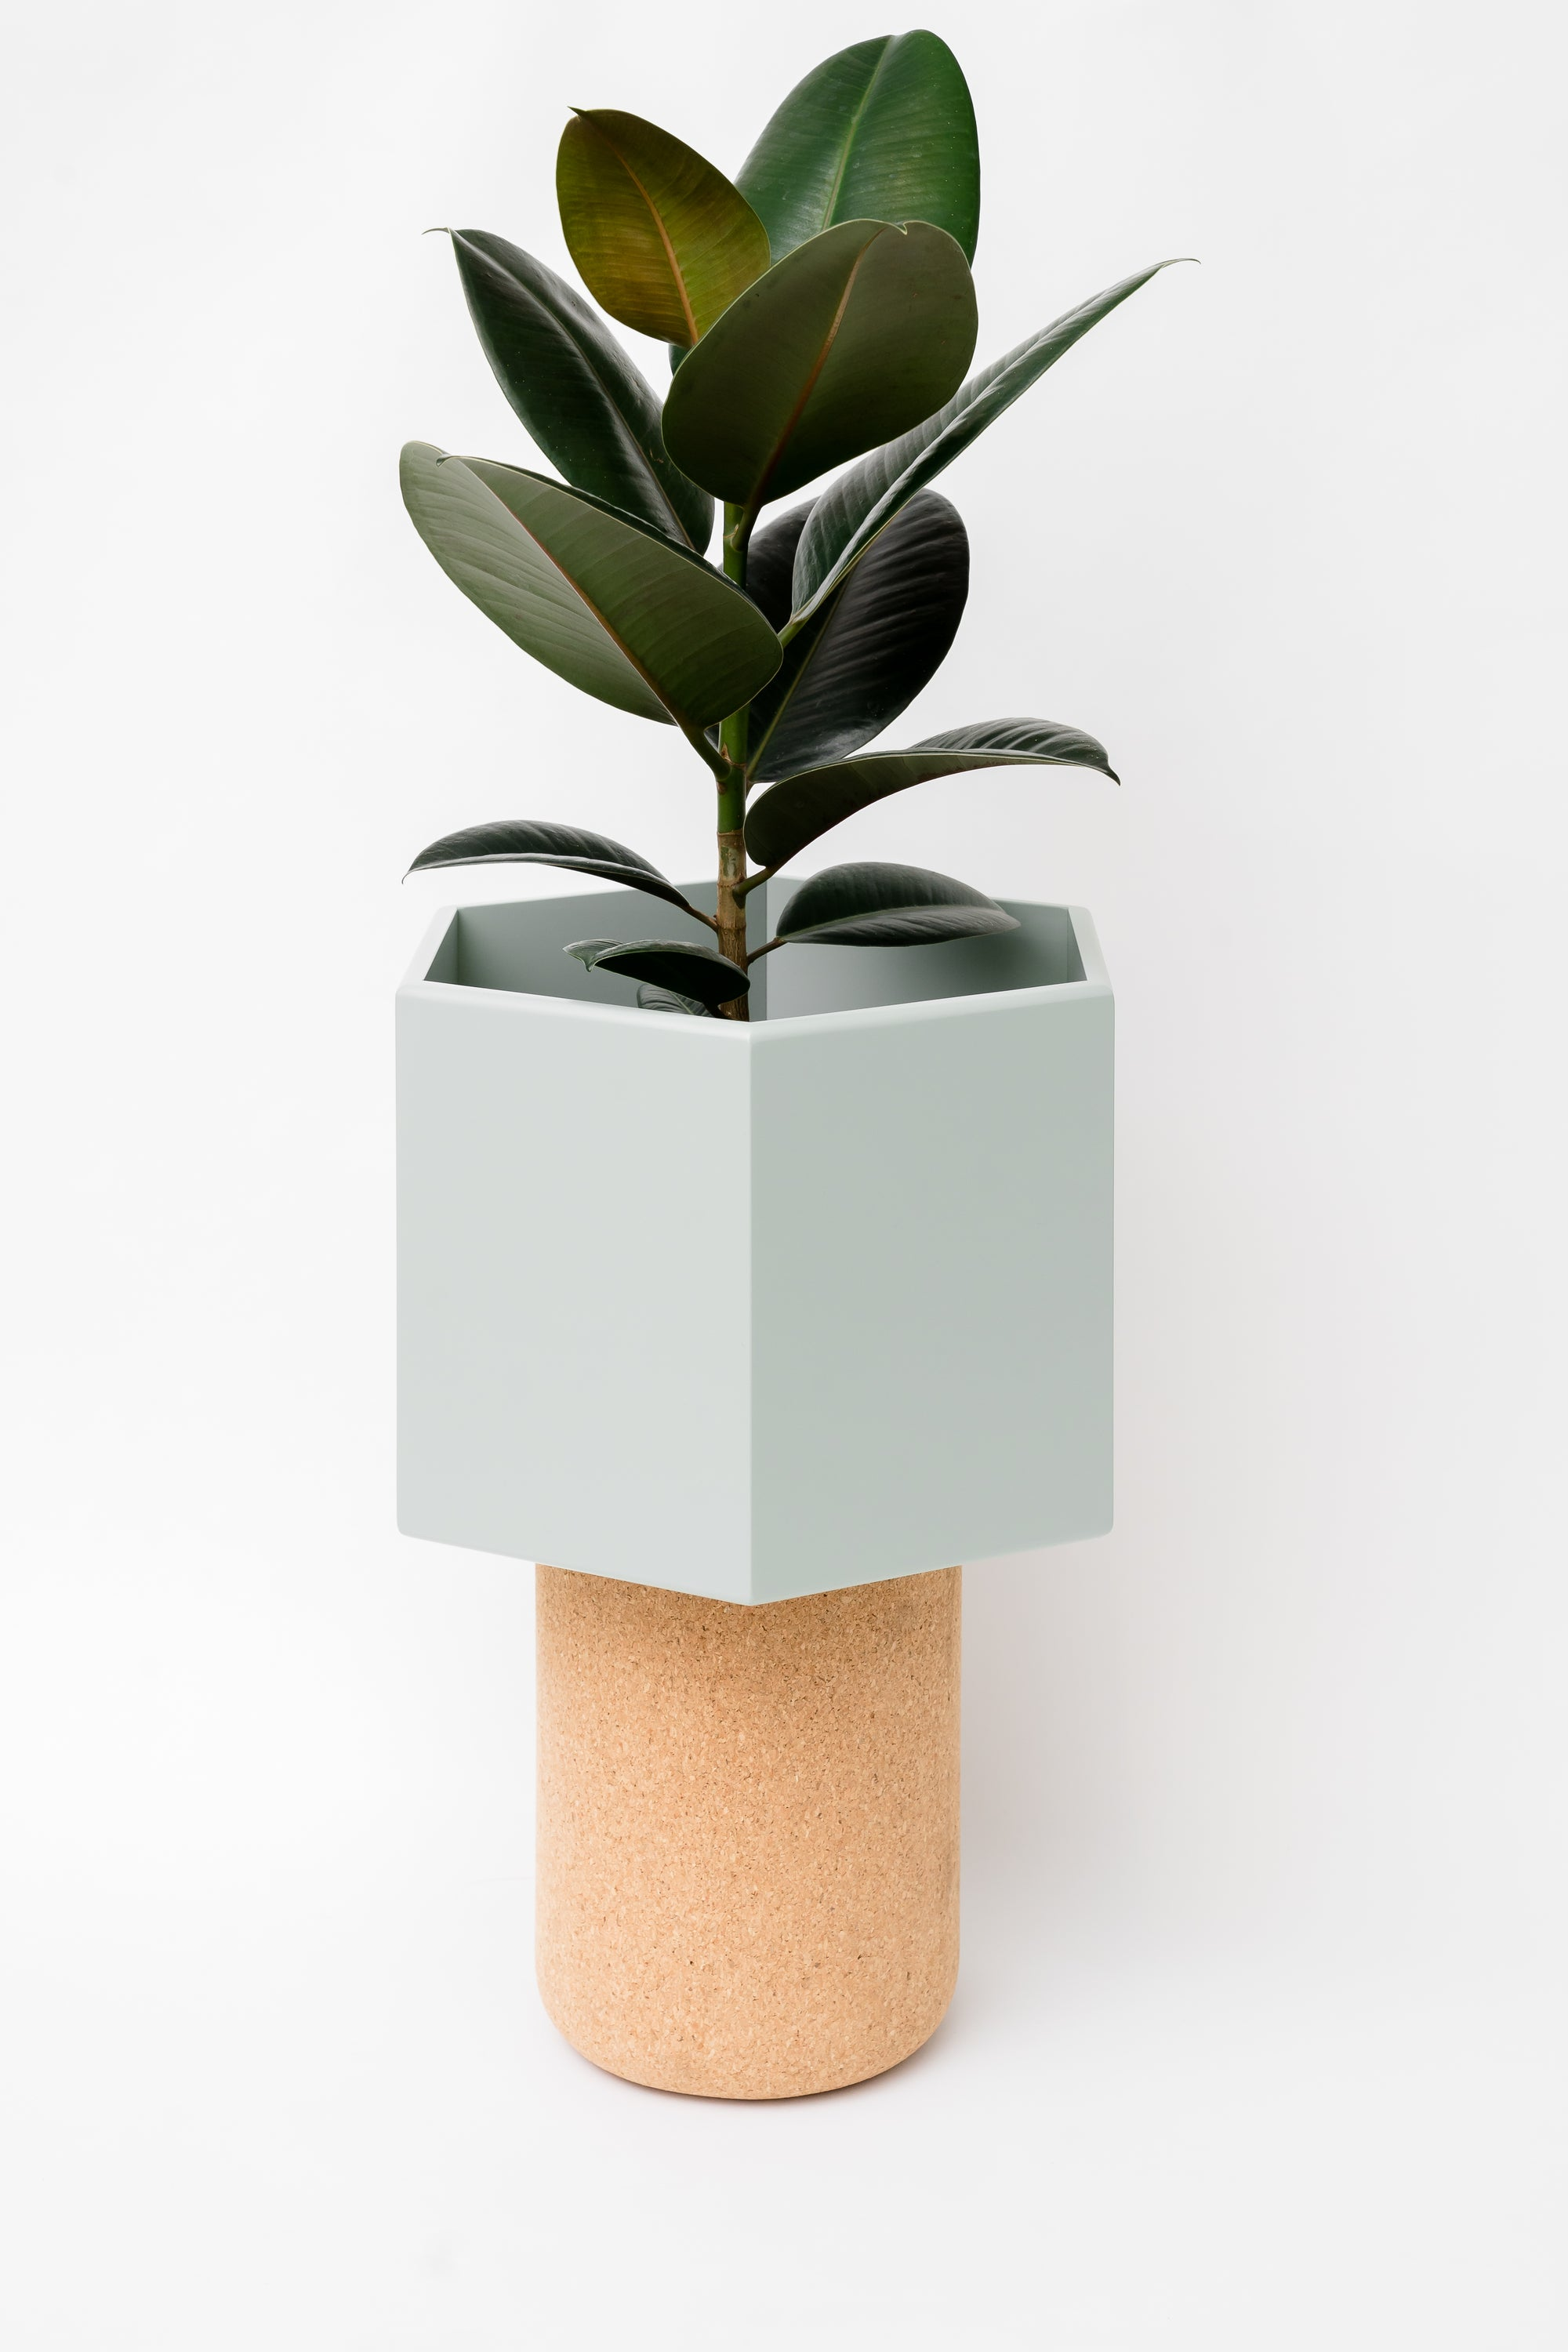 Image of Plant Pot - M